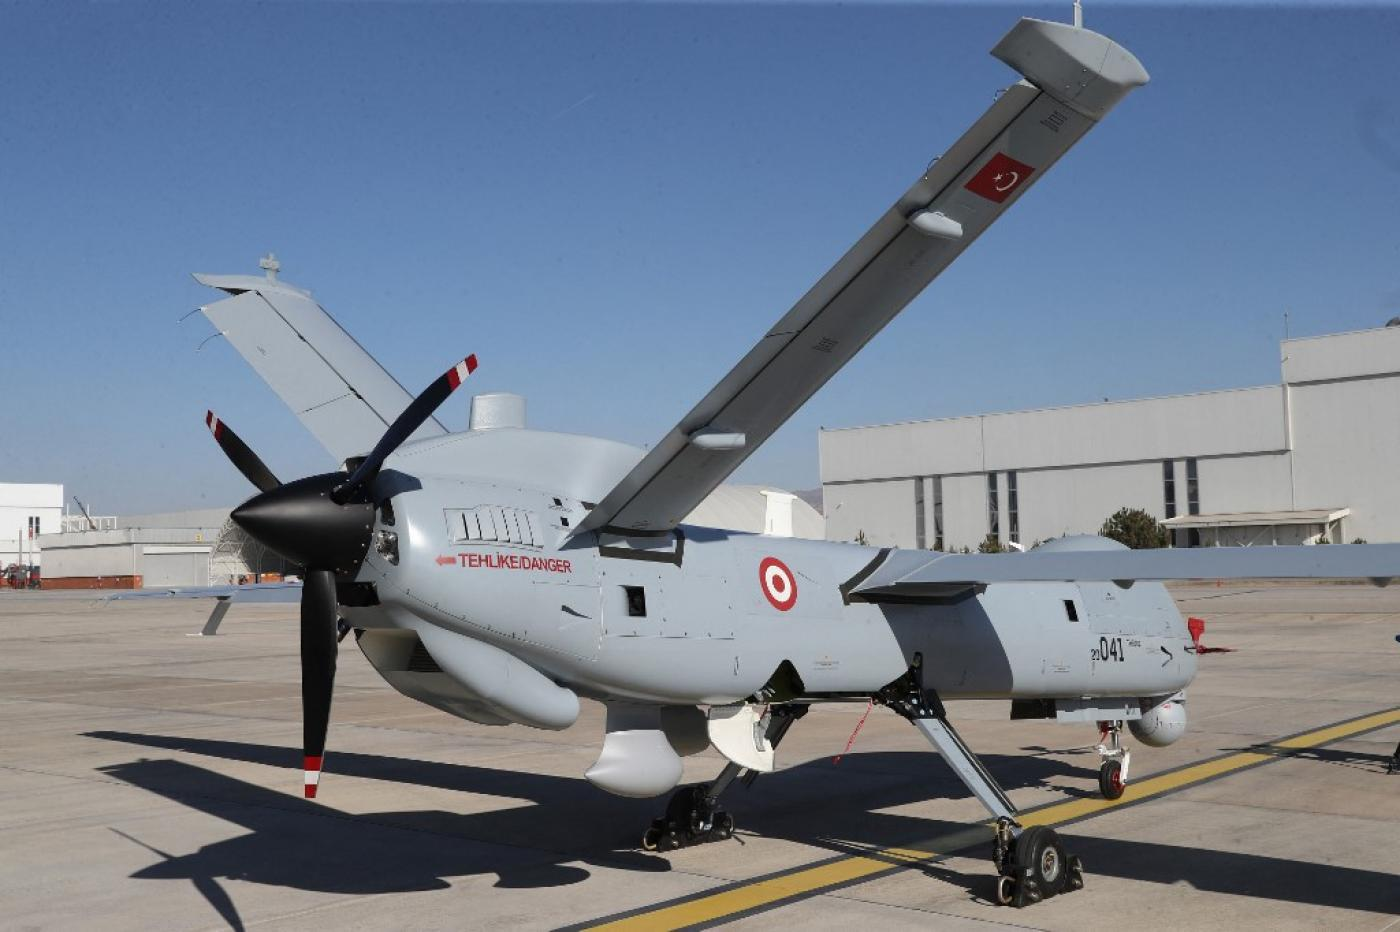 Turkey has emerged as one of the world's premier makers of armed drones.